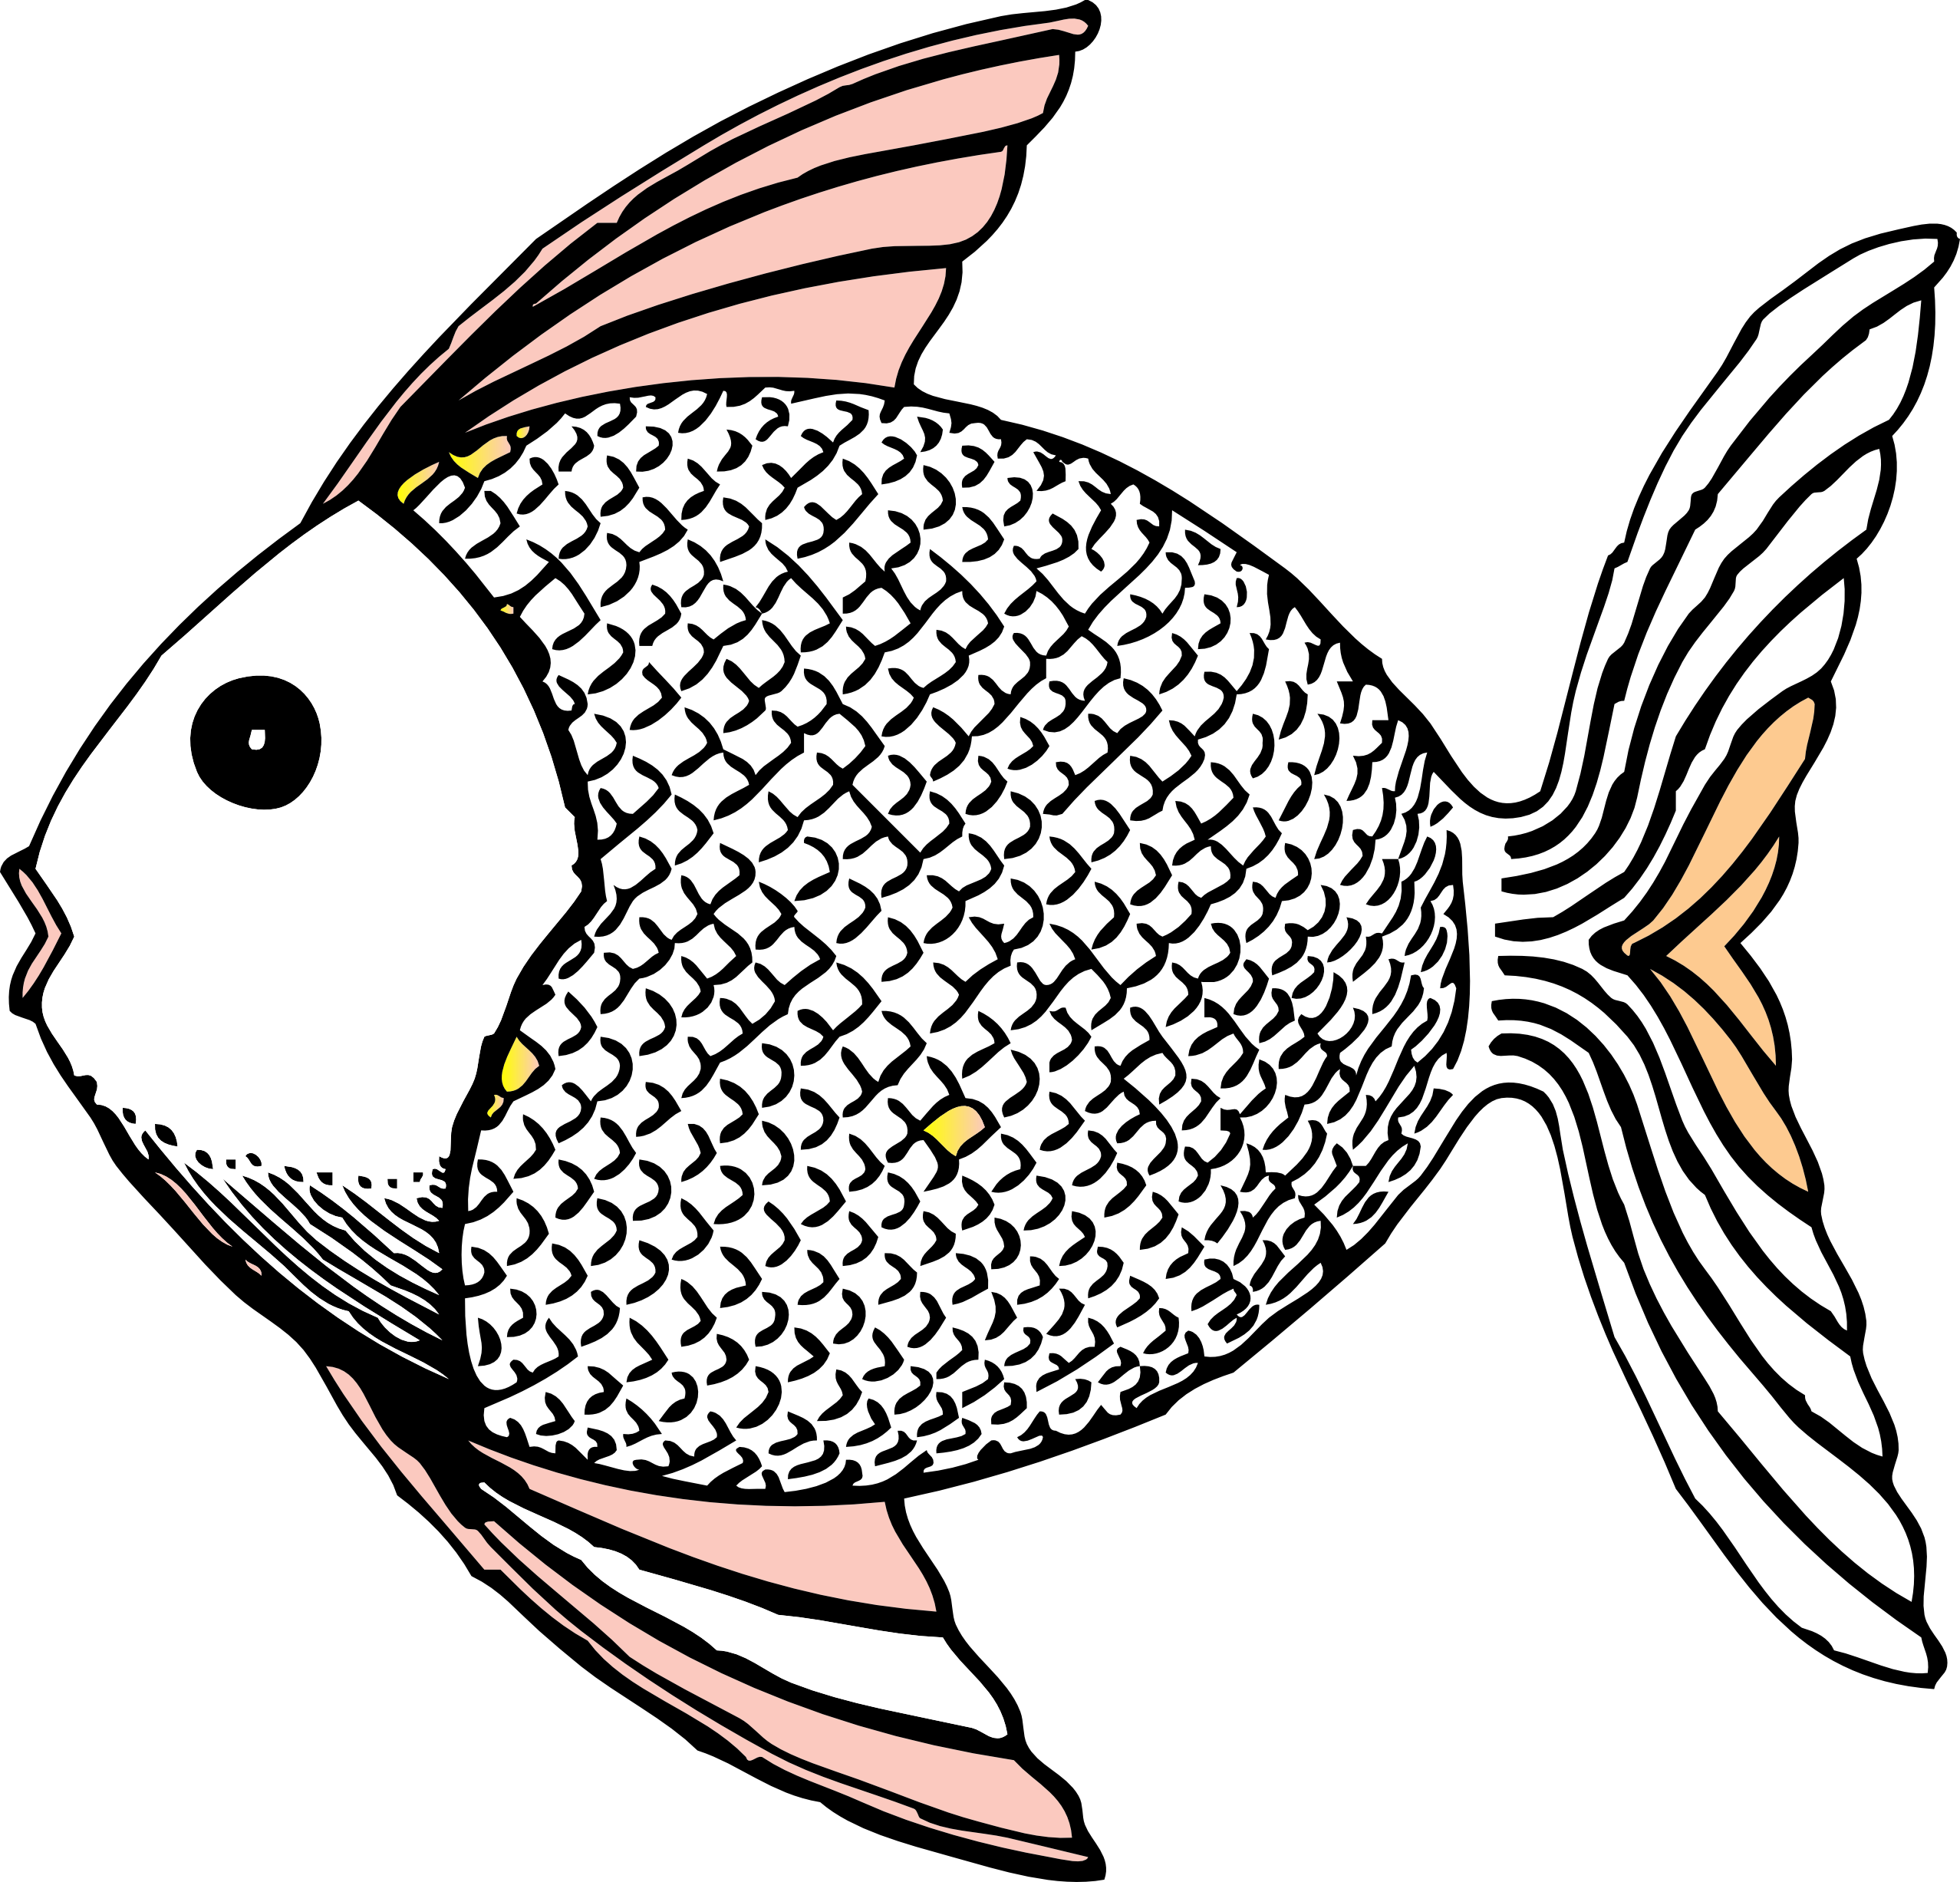 Fish clip art tropical. Fridge clipart black and white